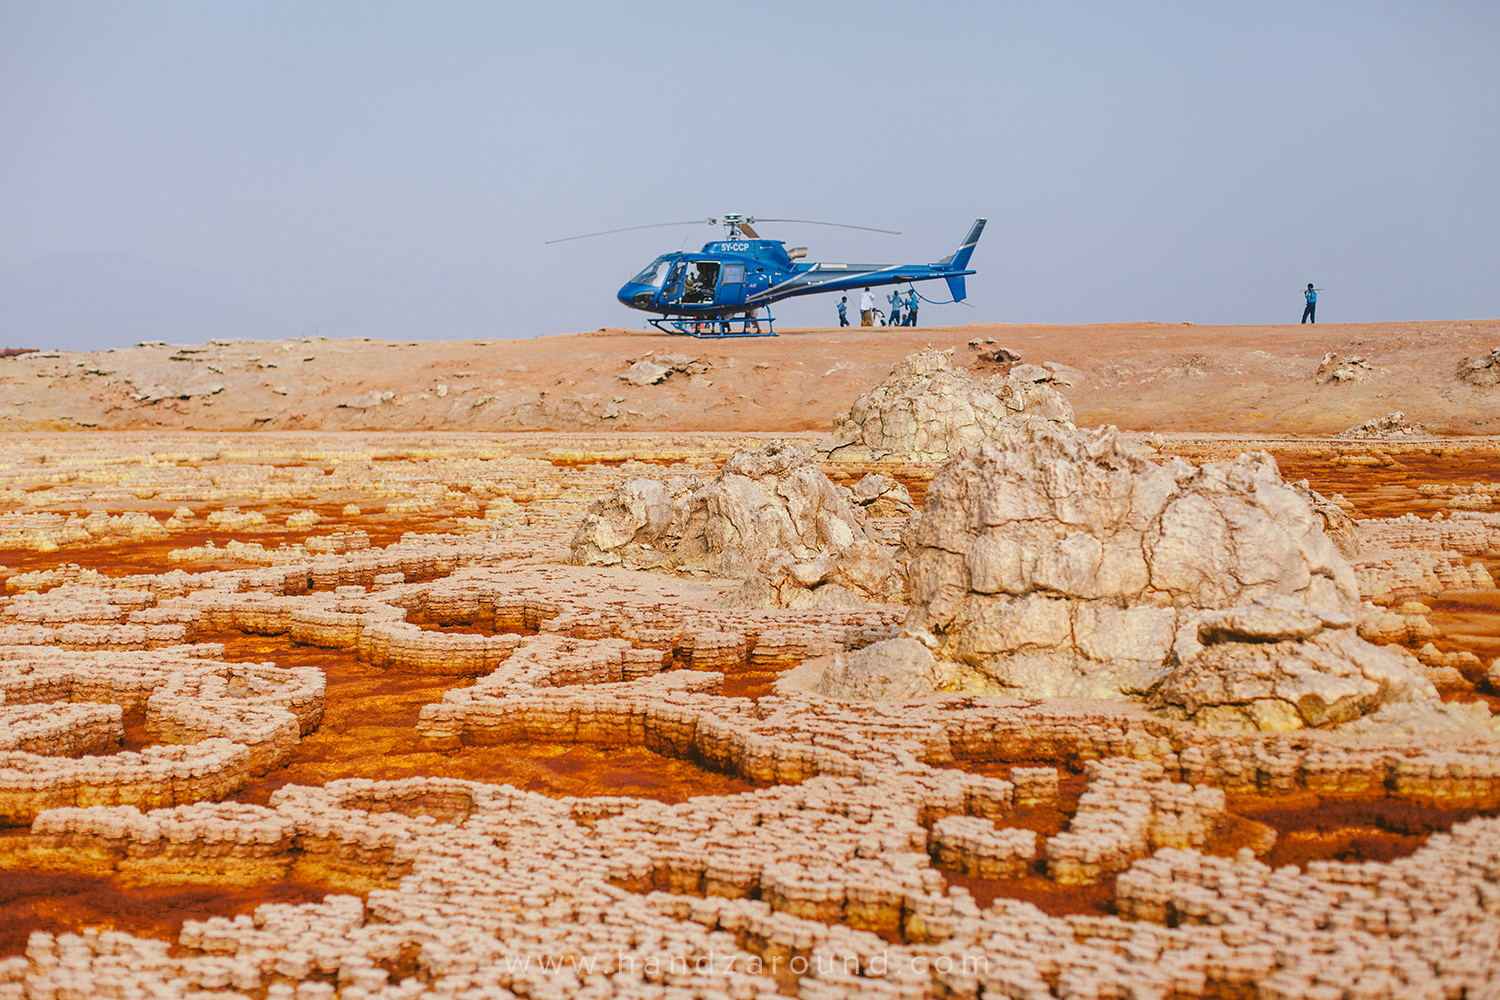 Some tourists arrived to Dallol in a very posh way!